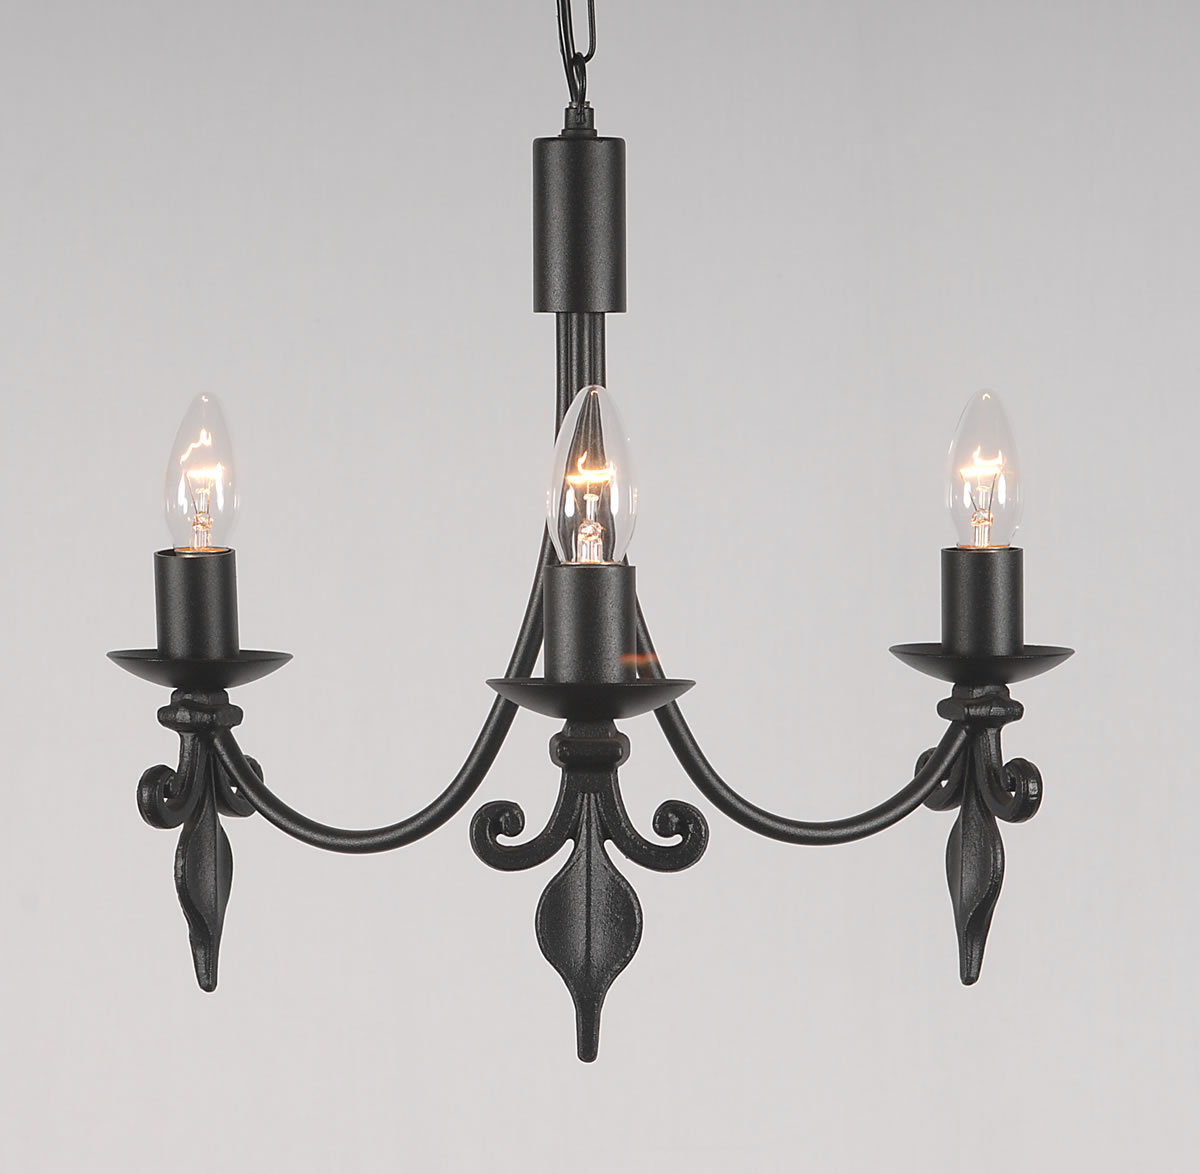 The fleur de lys 3 arm wrought iron candle ceiling light bespoke the fleur de lys collection 3 arm candle ceiling light mozeypictures Gallery